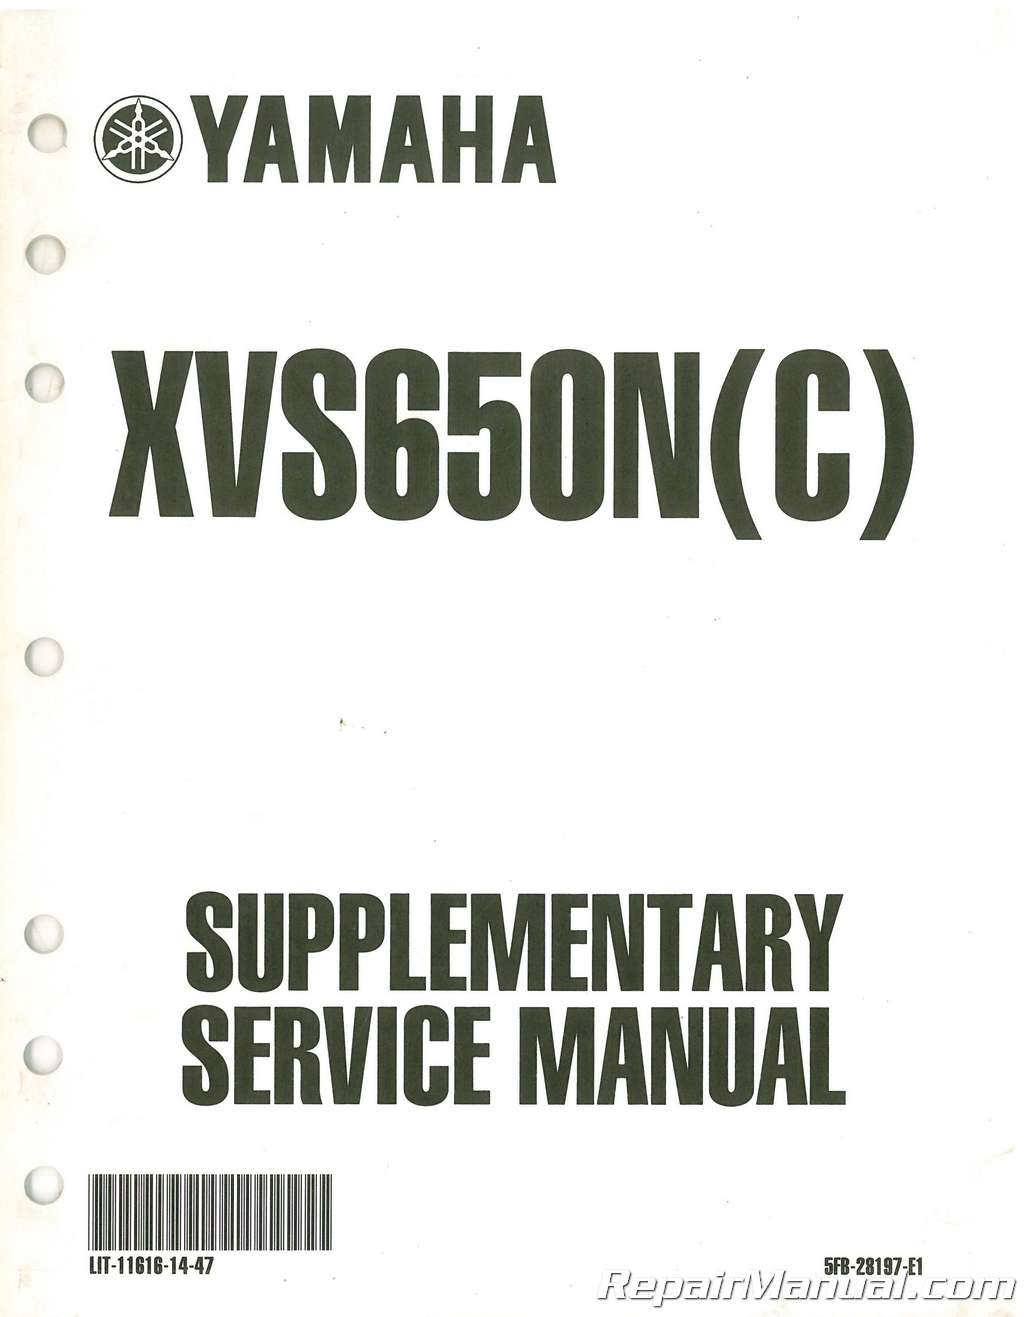 Used Yamaha XVS650N Service Manual Supplement